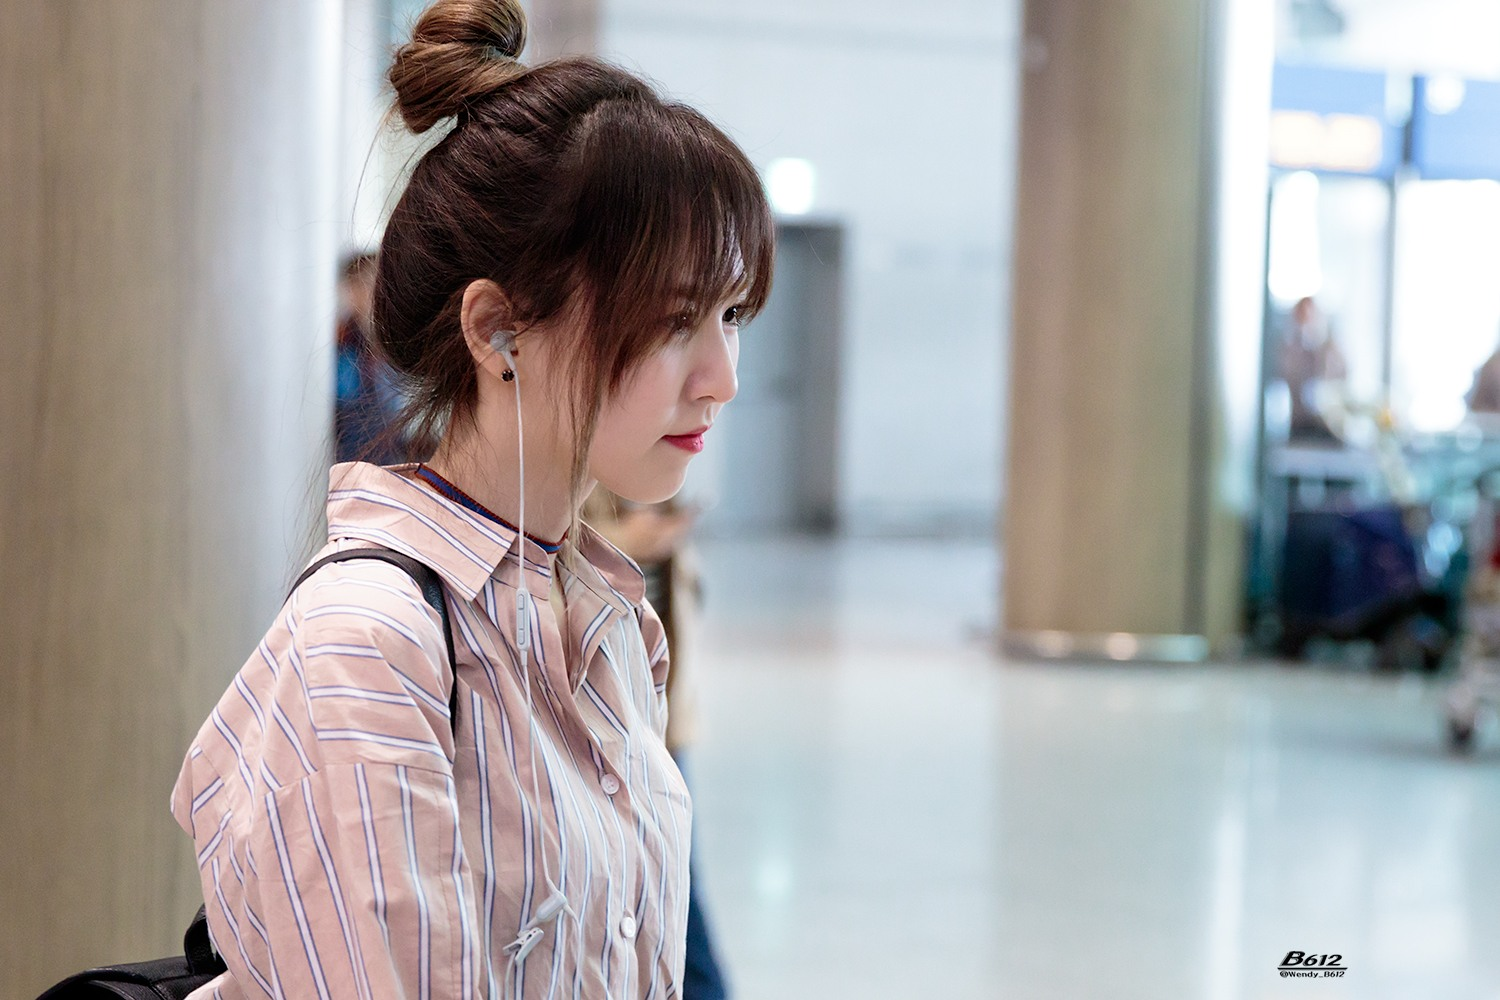 Wendy Channels Her Inner Tiffany With Latest Airport Outfit